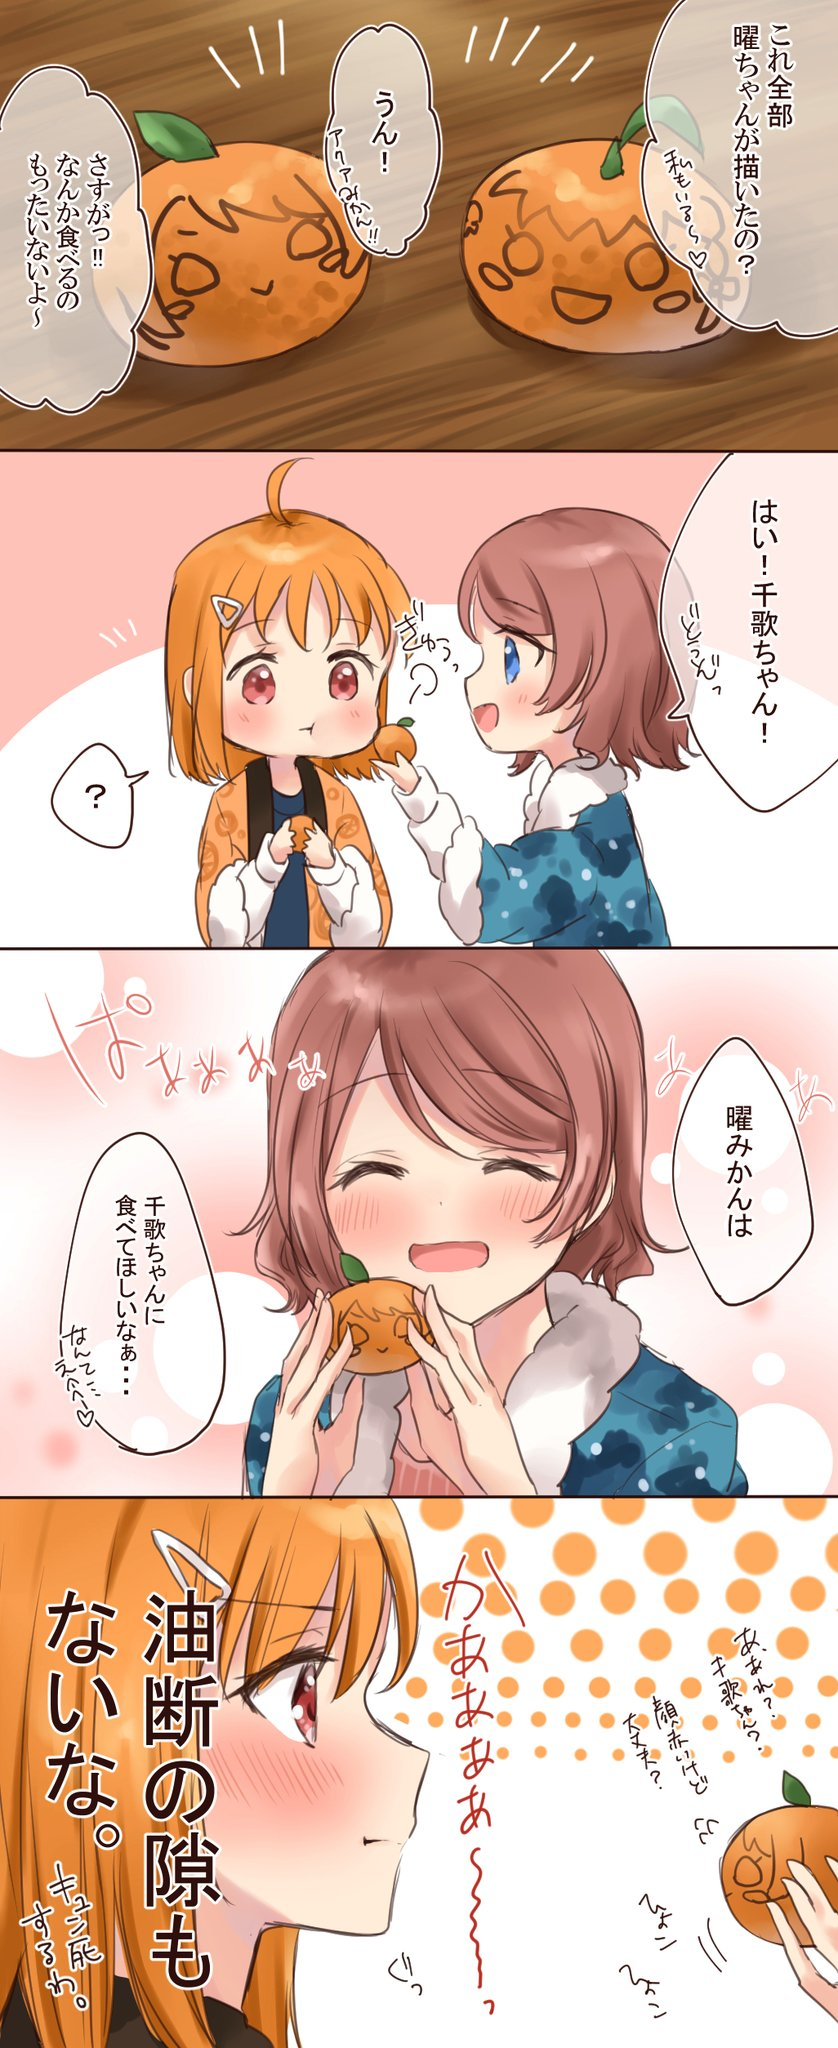 2girls 4koma :d :t ? ^_^ ahoge bangs blue_eyes blue_robe blush brown_hair bubble_background closed_eyes closed_eyes comic commentary_request drawing flying_sweatdrops food fruit fur_trim hair_ornament hairclip highres holding holding_food holding_fruit long_sleeves looking_at_another love_live! love_live!_sunshine!! mandarin_orange minori_748 multiple_girls notice_lines object_to_cheek open_mouth orange_hair orange_robe red_eyes robe short_hair smile spoken_question_mark takami_chika translation_request watanabe_you yuri